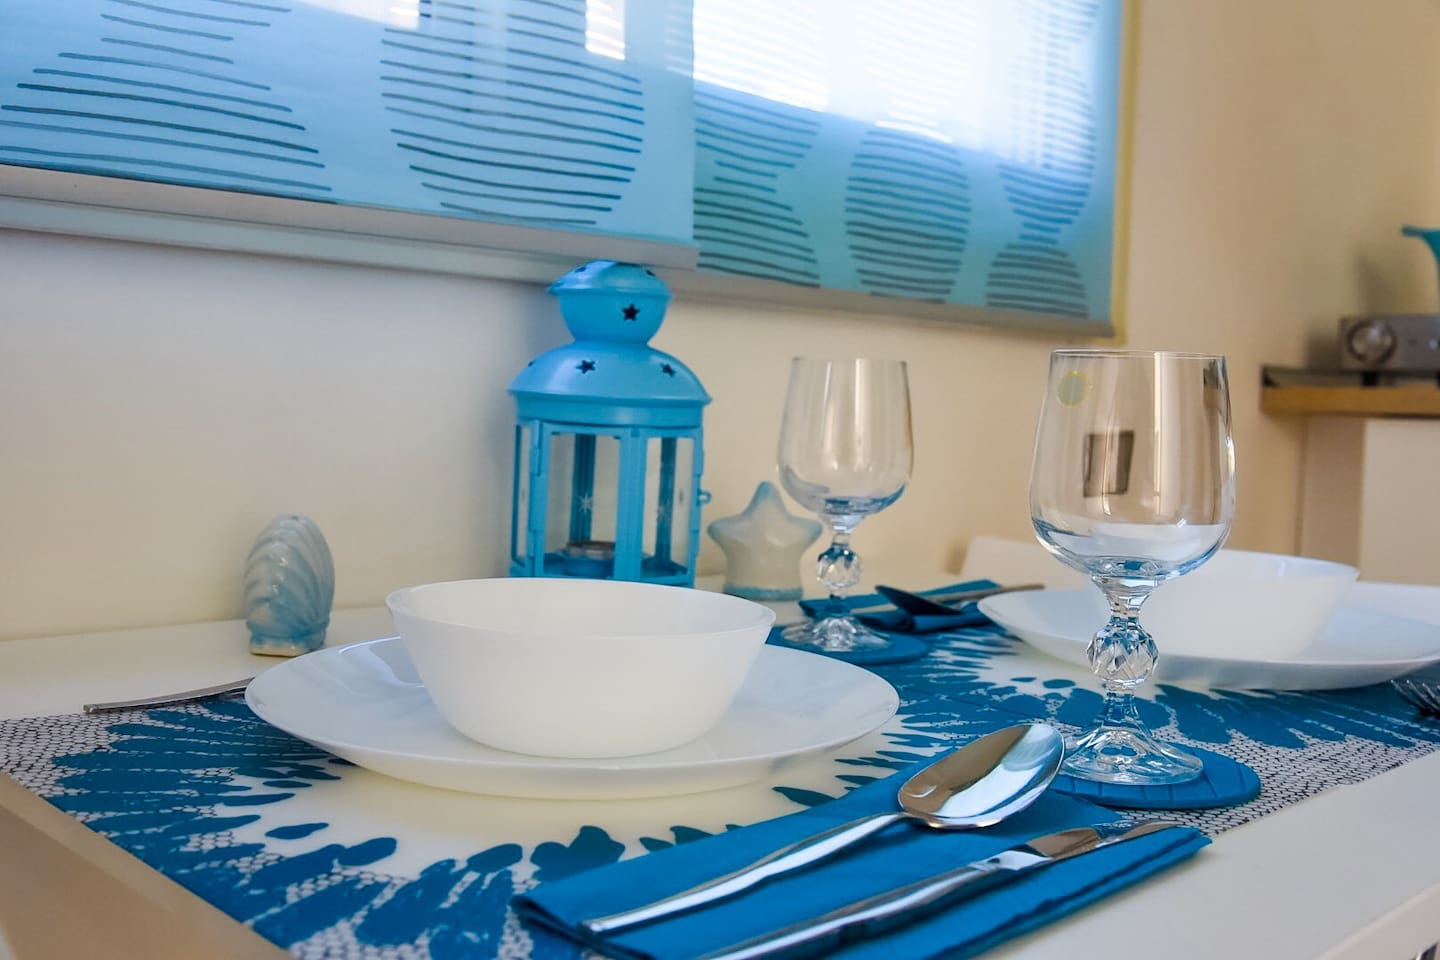 Our blue-themed dining table